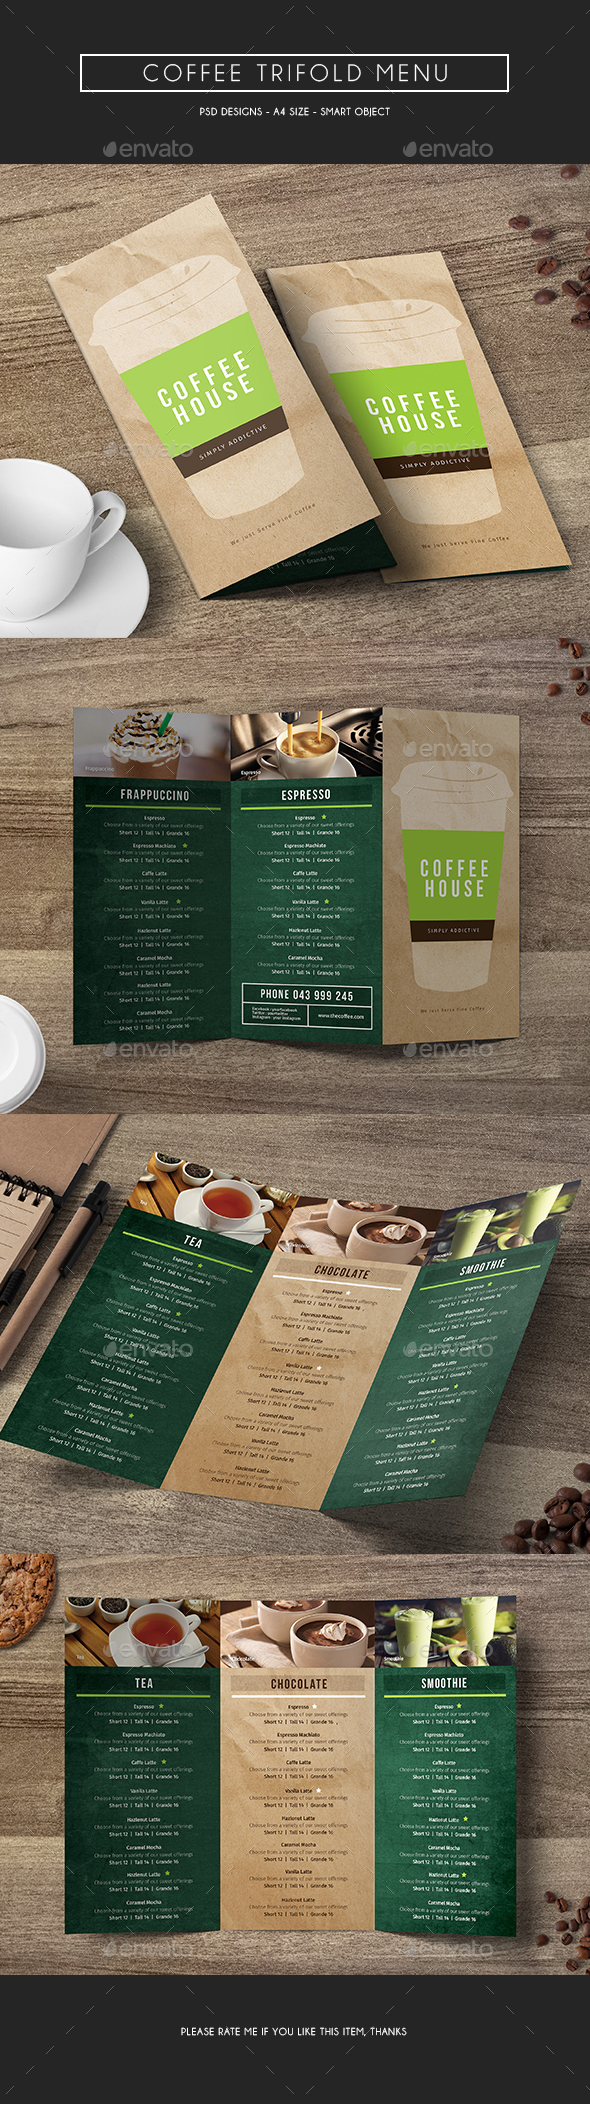 Coffee Trifold Menu - Food Menus Print Templates